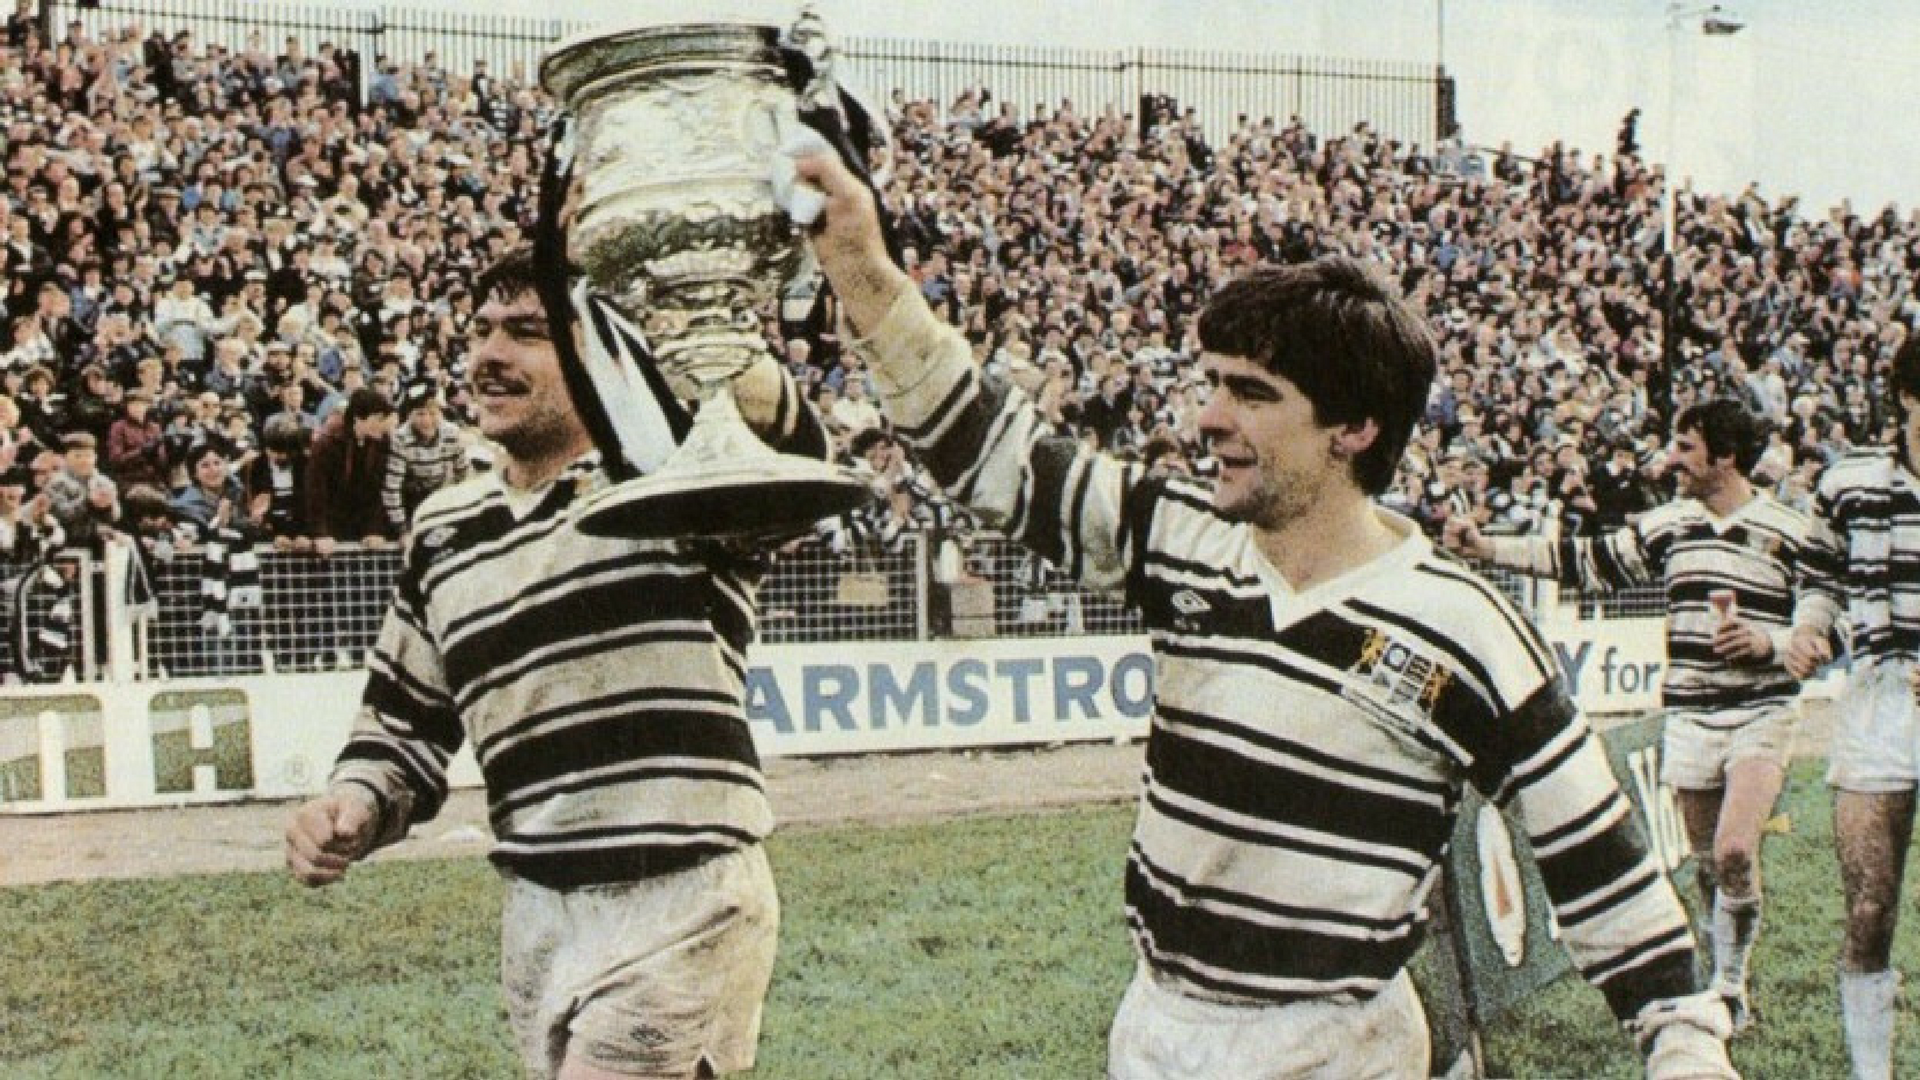 Hull were last crowned league title winners in 1982/83.